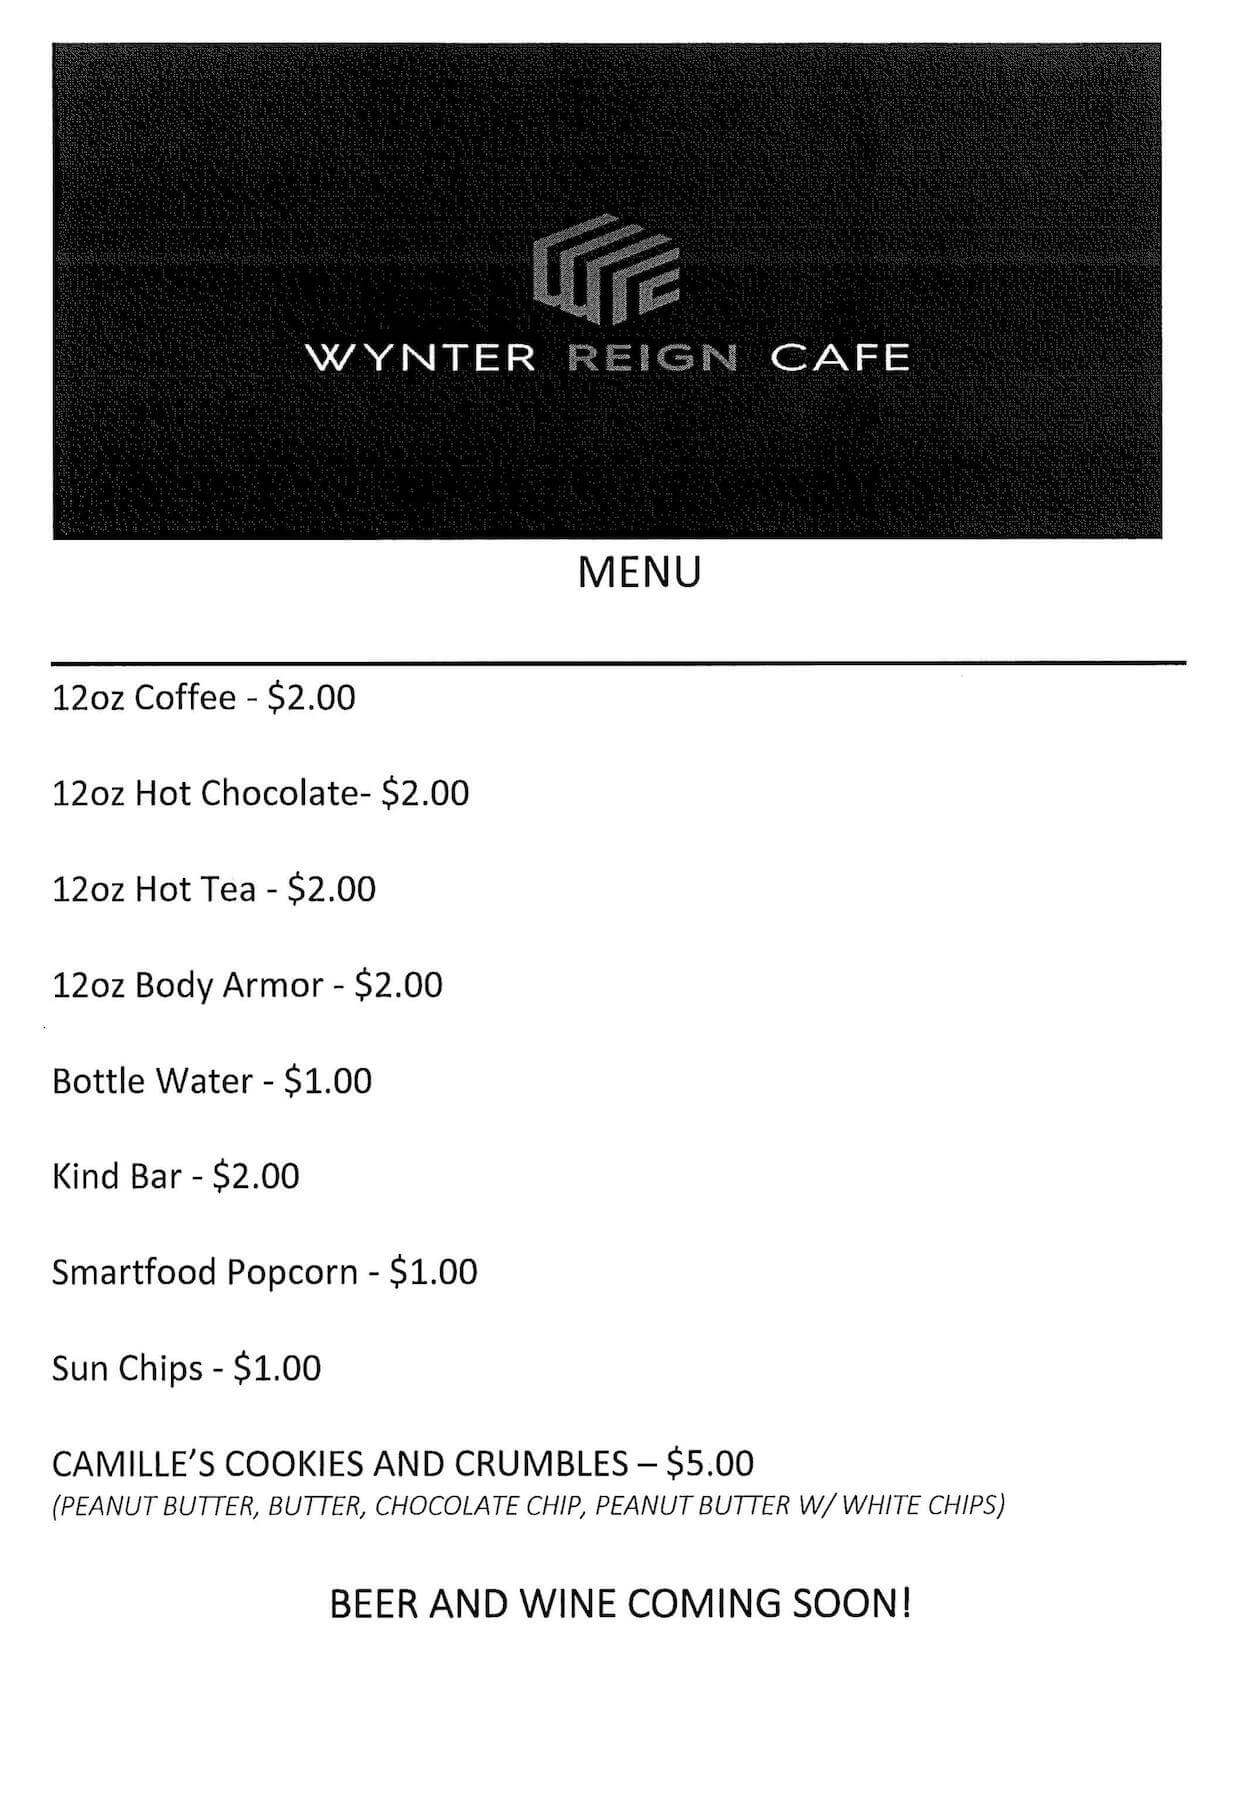 Photo of the menu. Transcribed text in the event description.